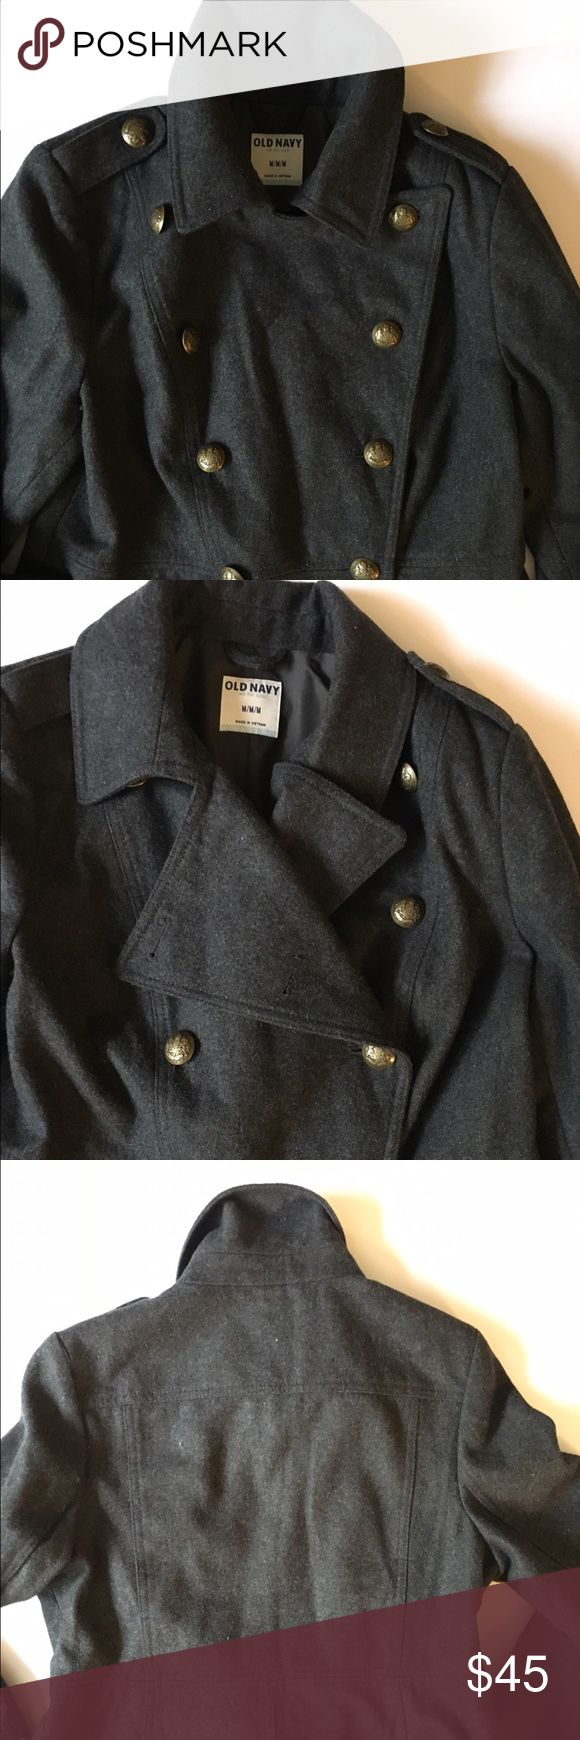 """Old Navy Military Style Coat Condition: Exellent Used Condition  Cosmetic Blemish: None Length from Shoulder to Hem: 34"""" Questions: Ask away! *Other items pictured are available in my shop! Old Navy Jackets & Coats Trench Coats"""